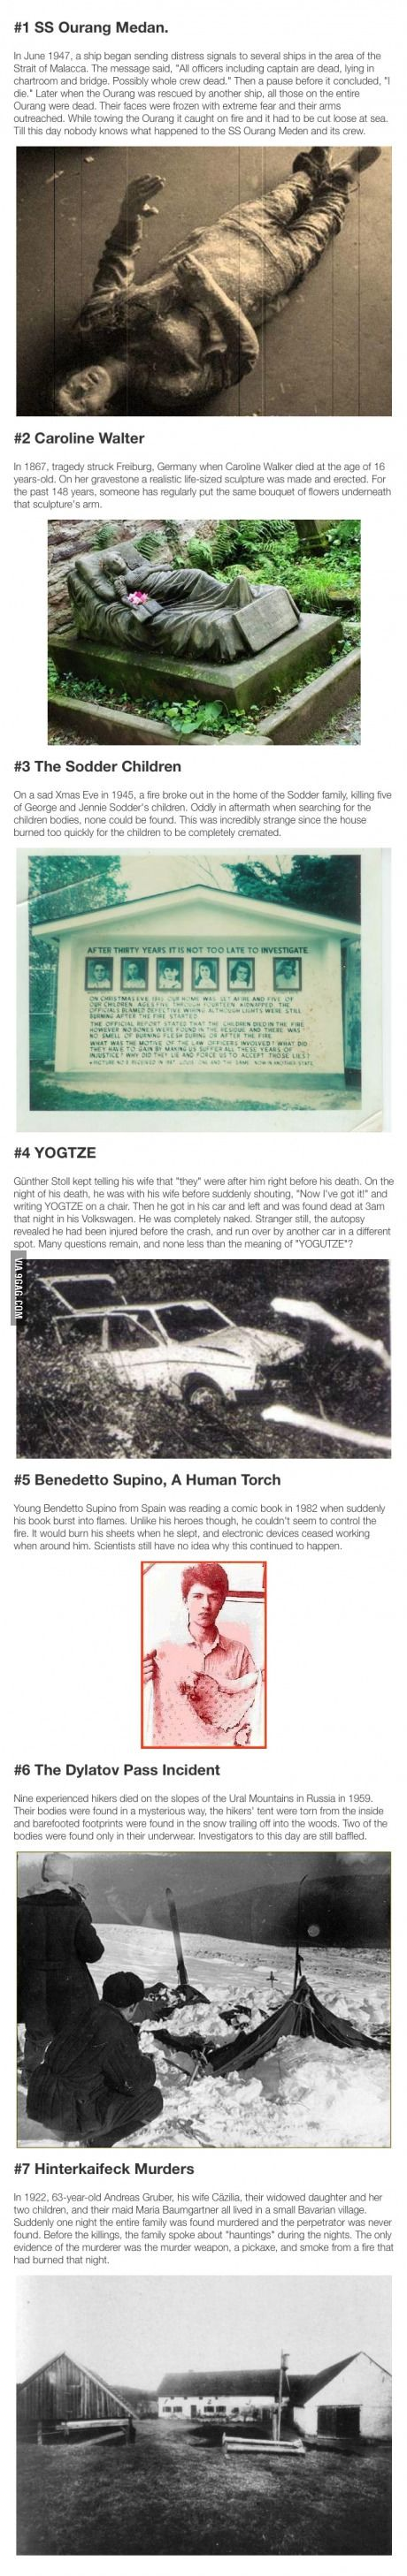 Seven unsolved mysteries from around the world.